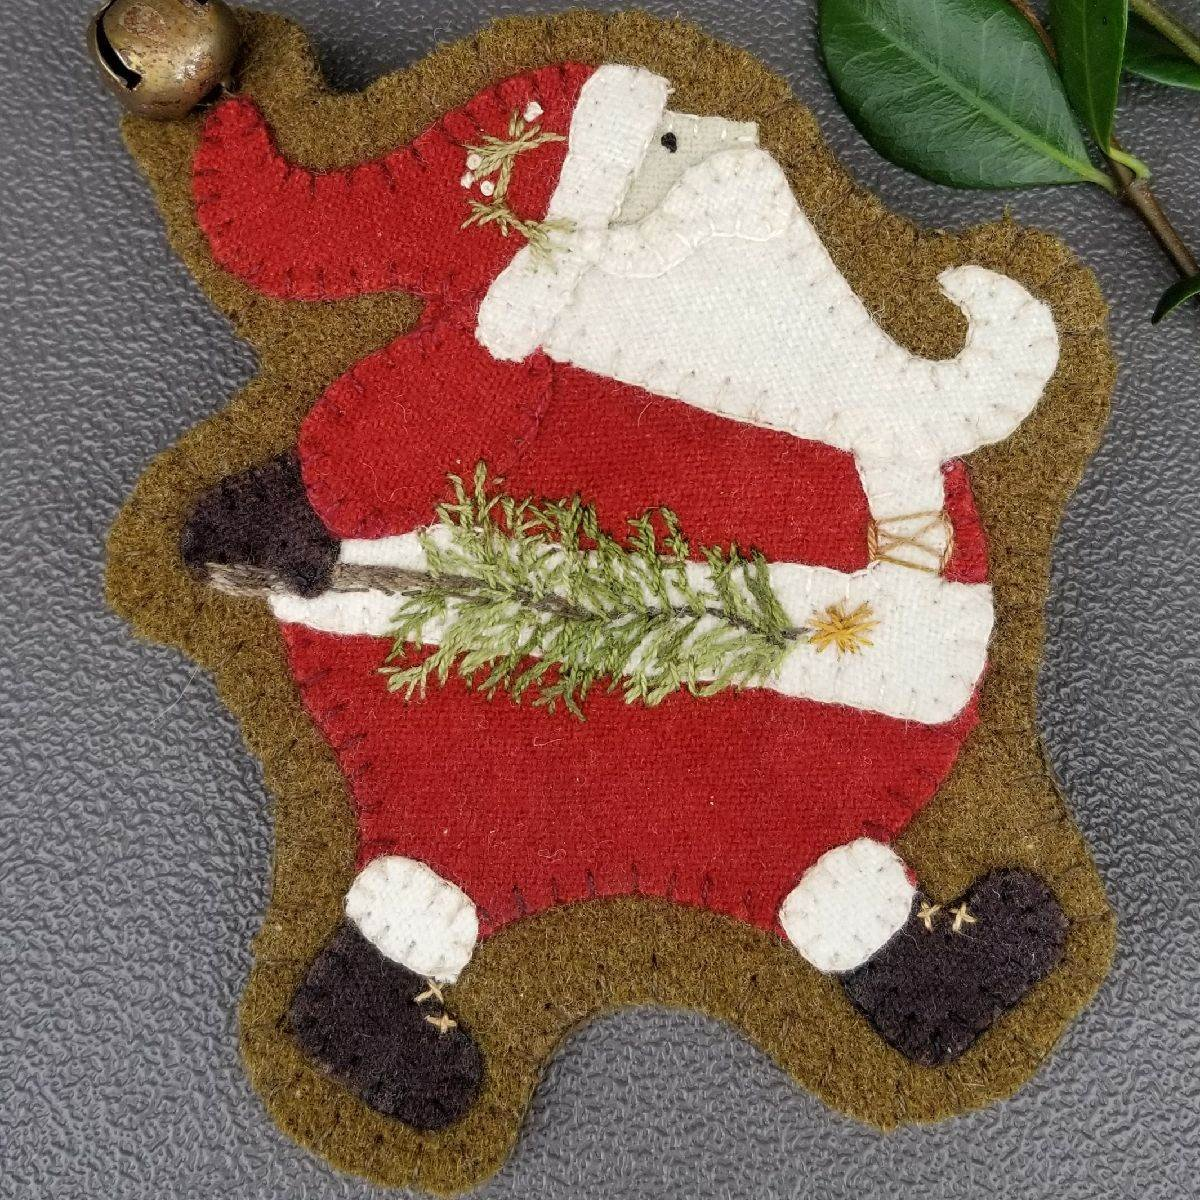 ORNAMENT RUNNING SANTA